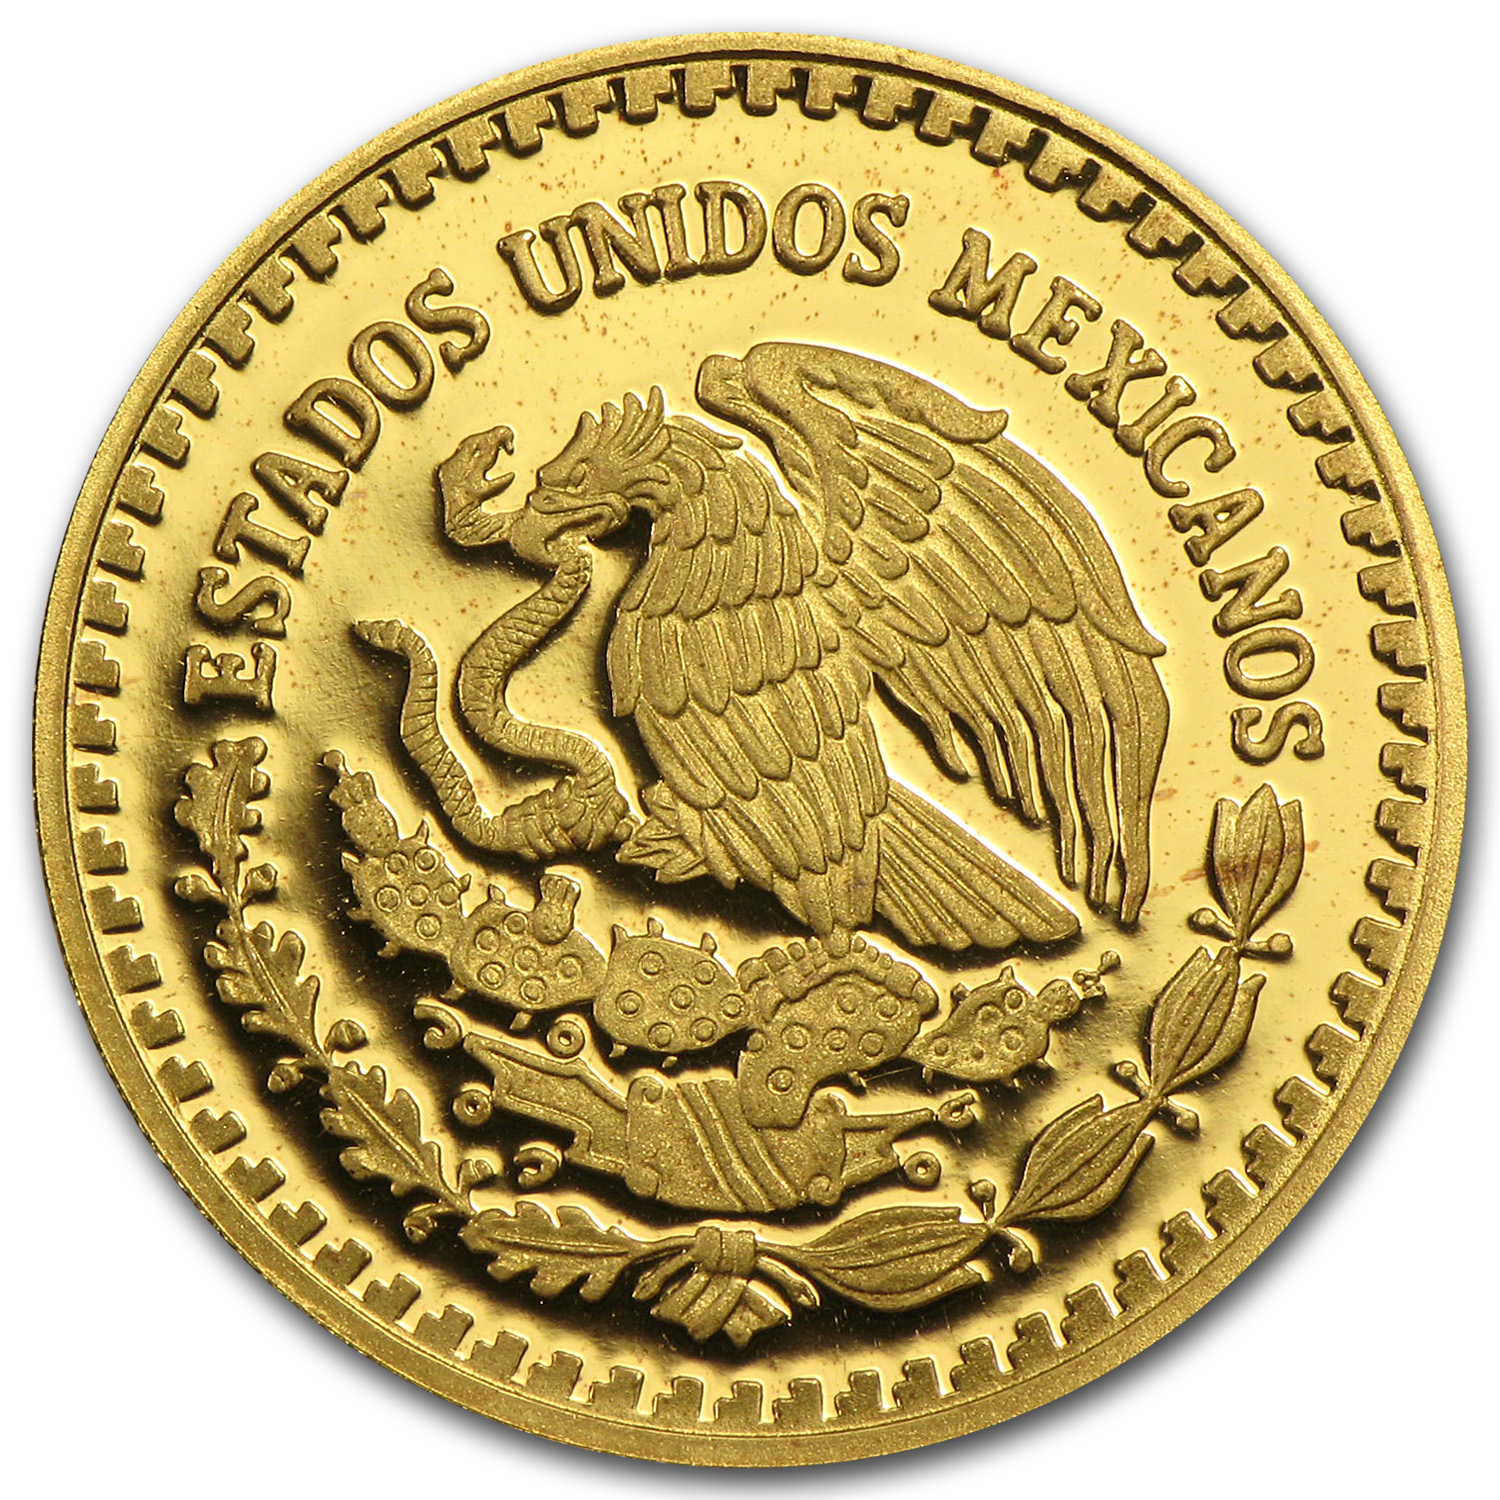 2005 1/4 oz Gold Mexican Libertad - Proof